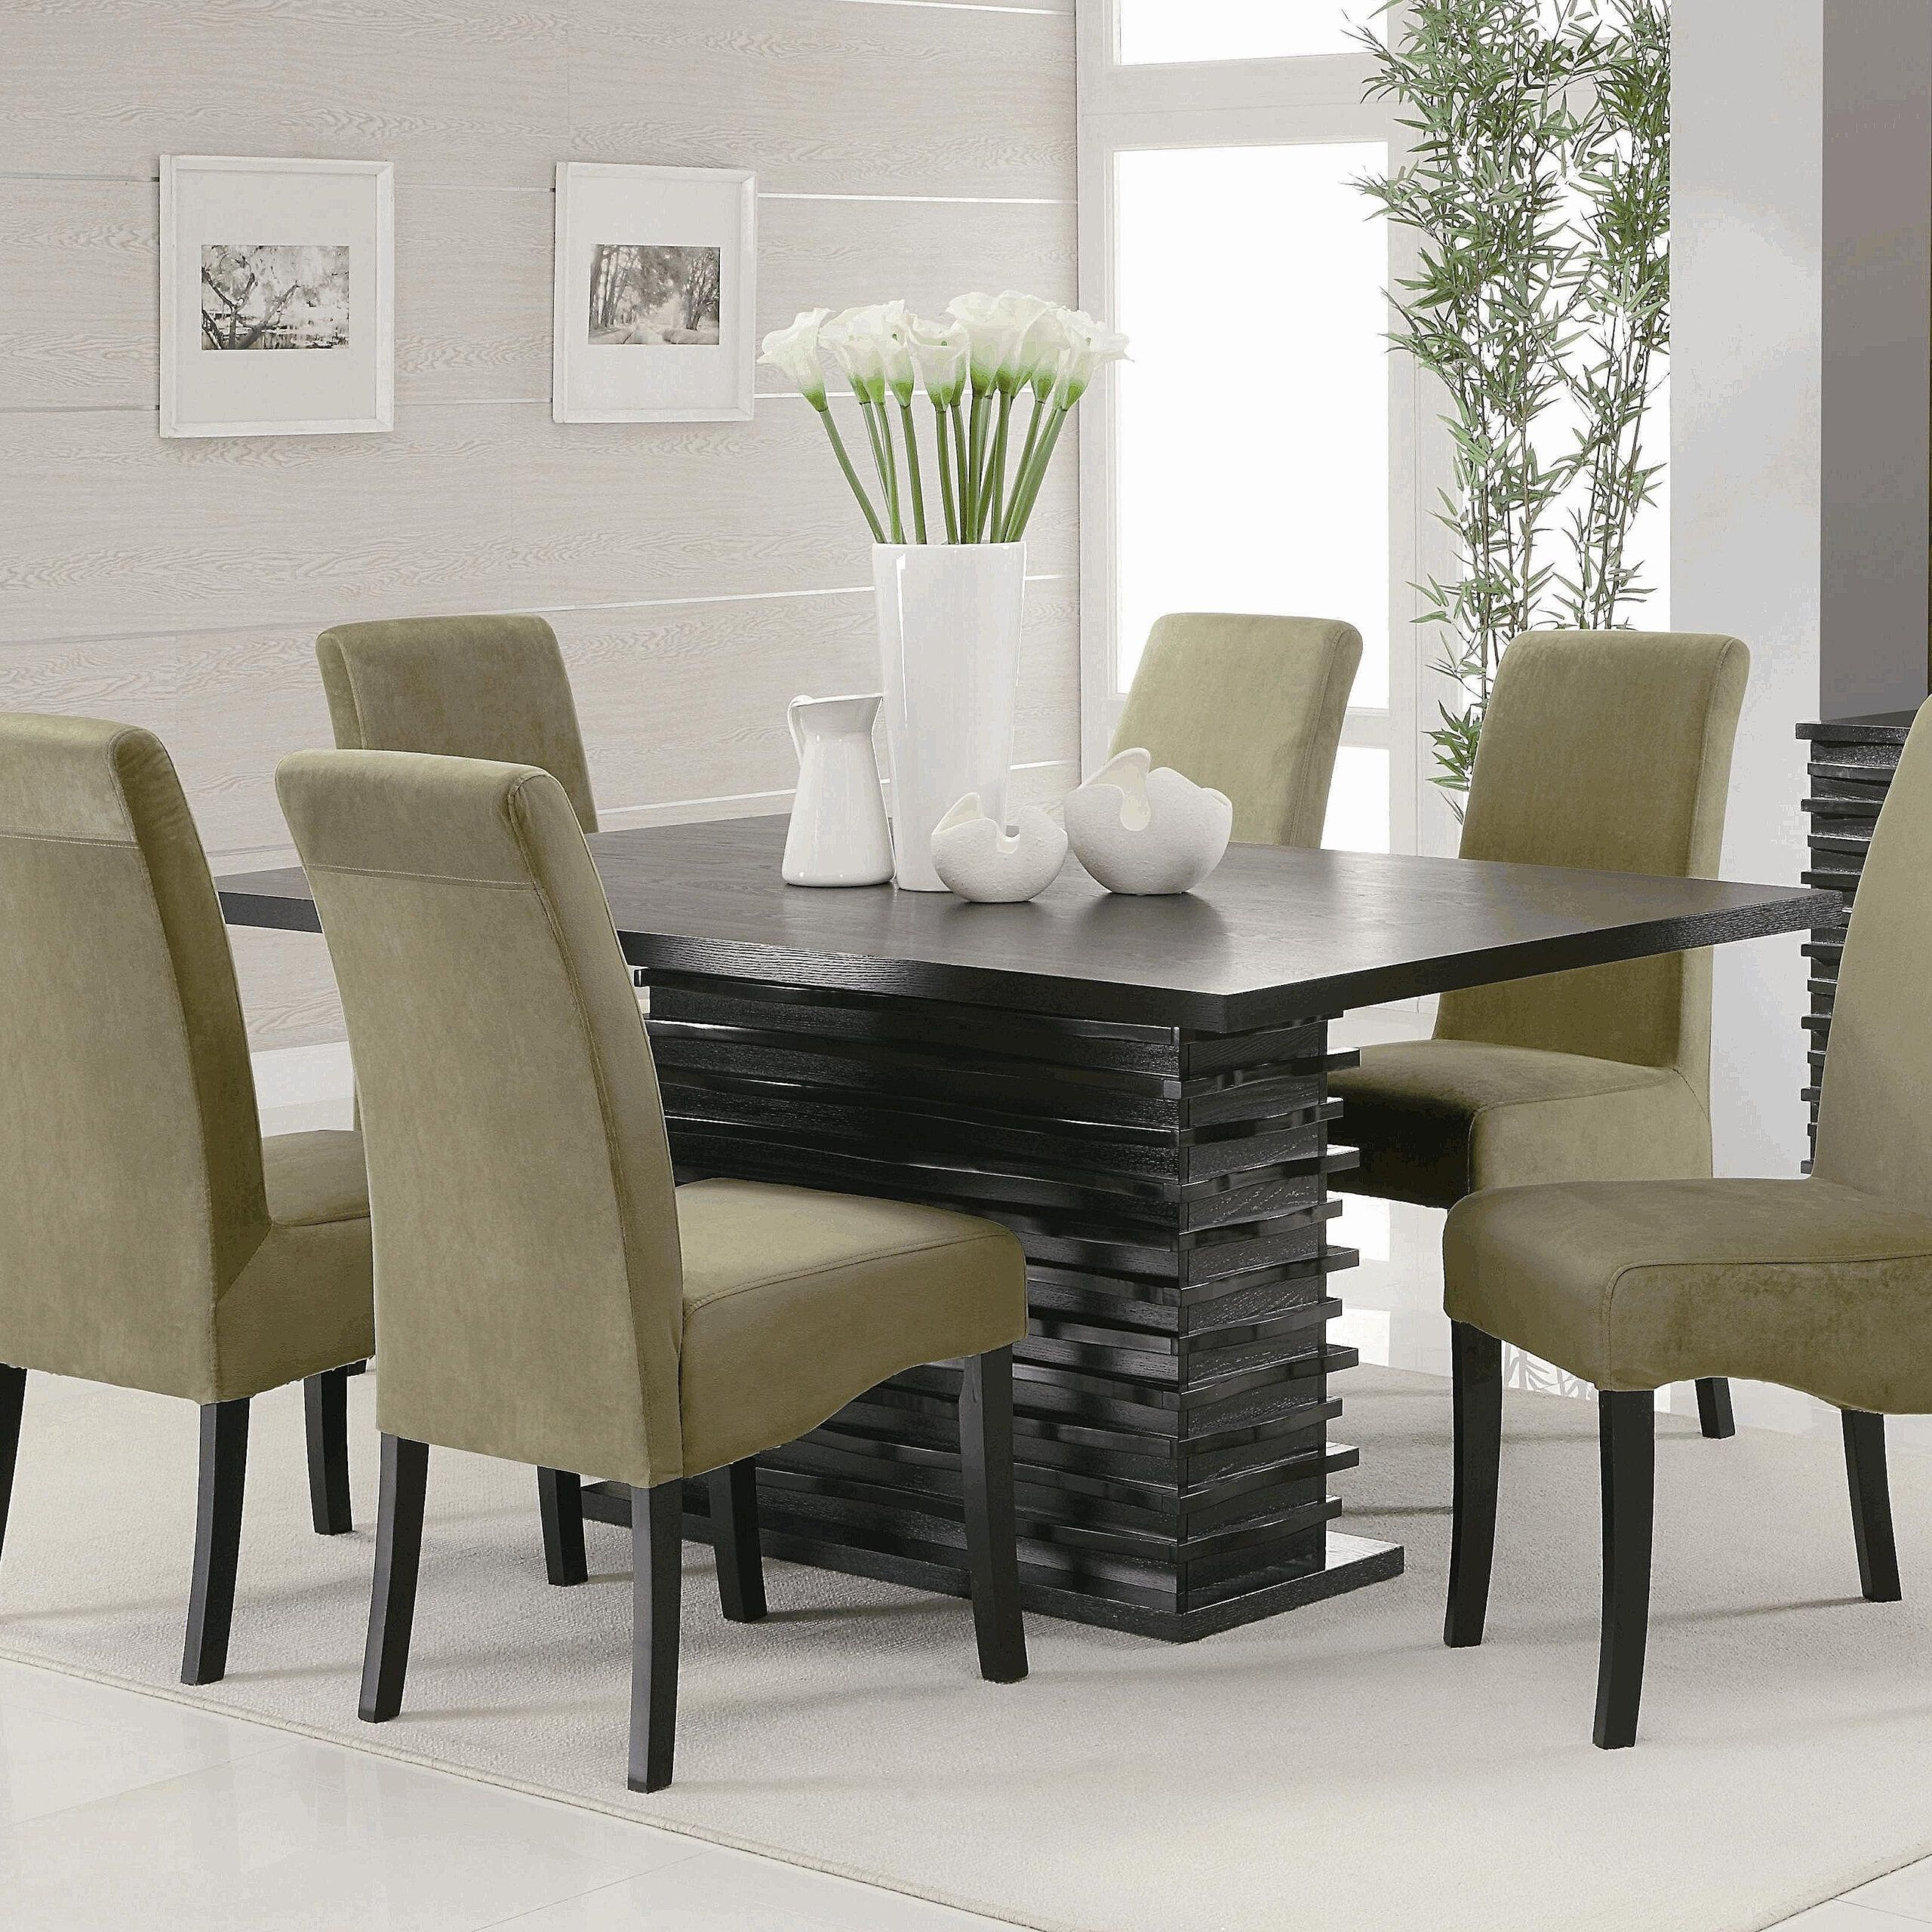 Unique Centerpieces For Dining Room Table In 2021 Dining Room Table Unique Centerpieces Dining Room